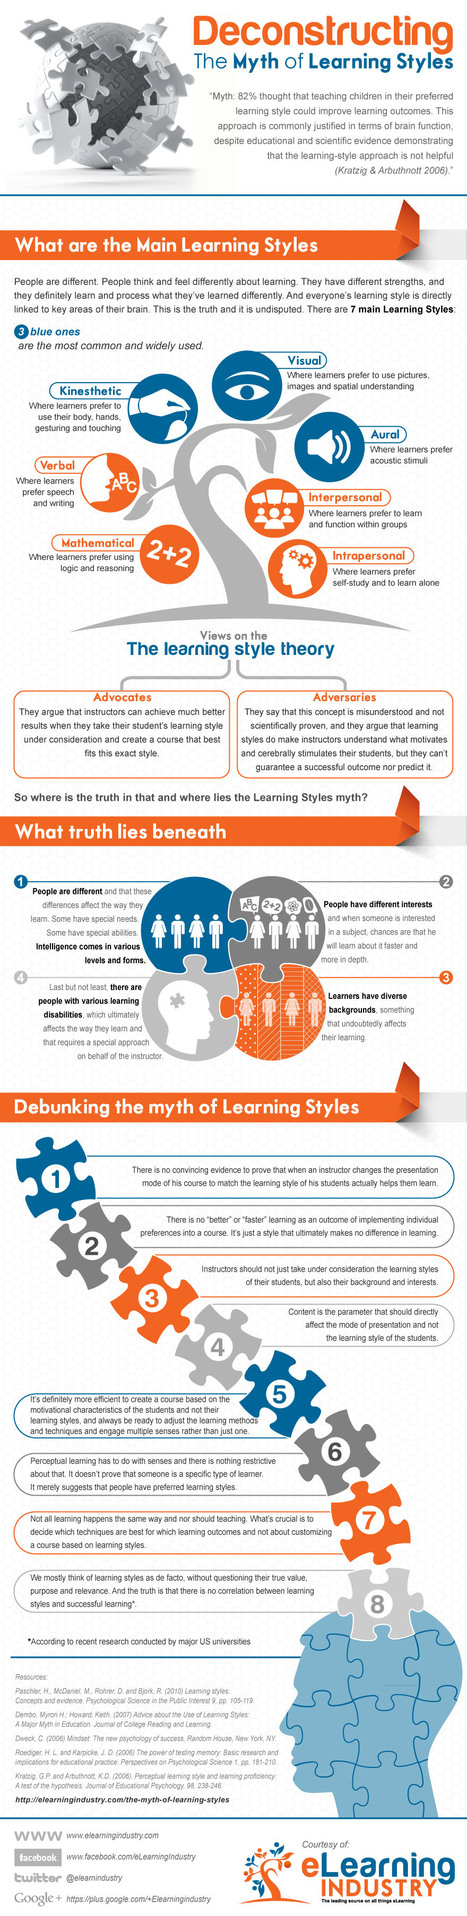 The Myth of Learning Styles - Infographic | Infographics4Me | Scoop.it